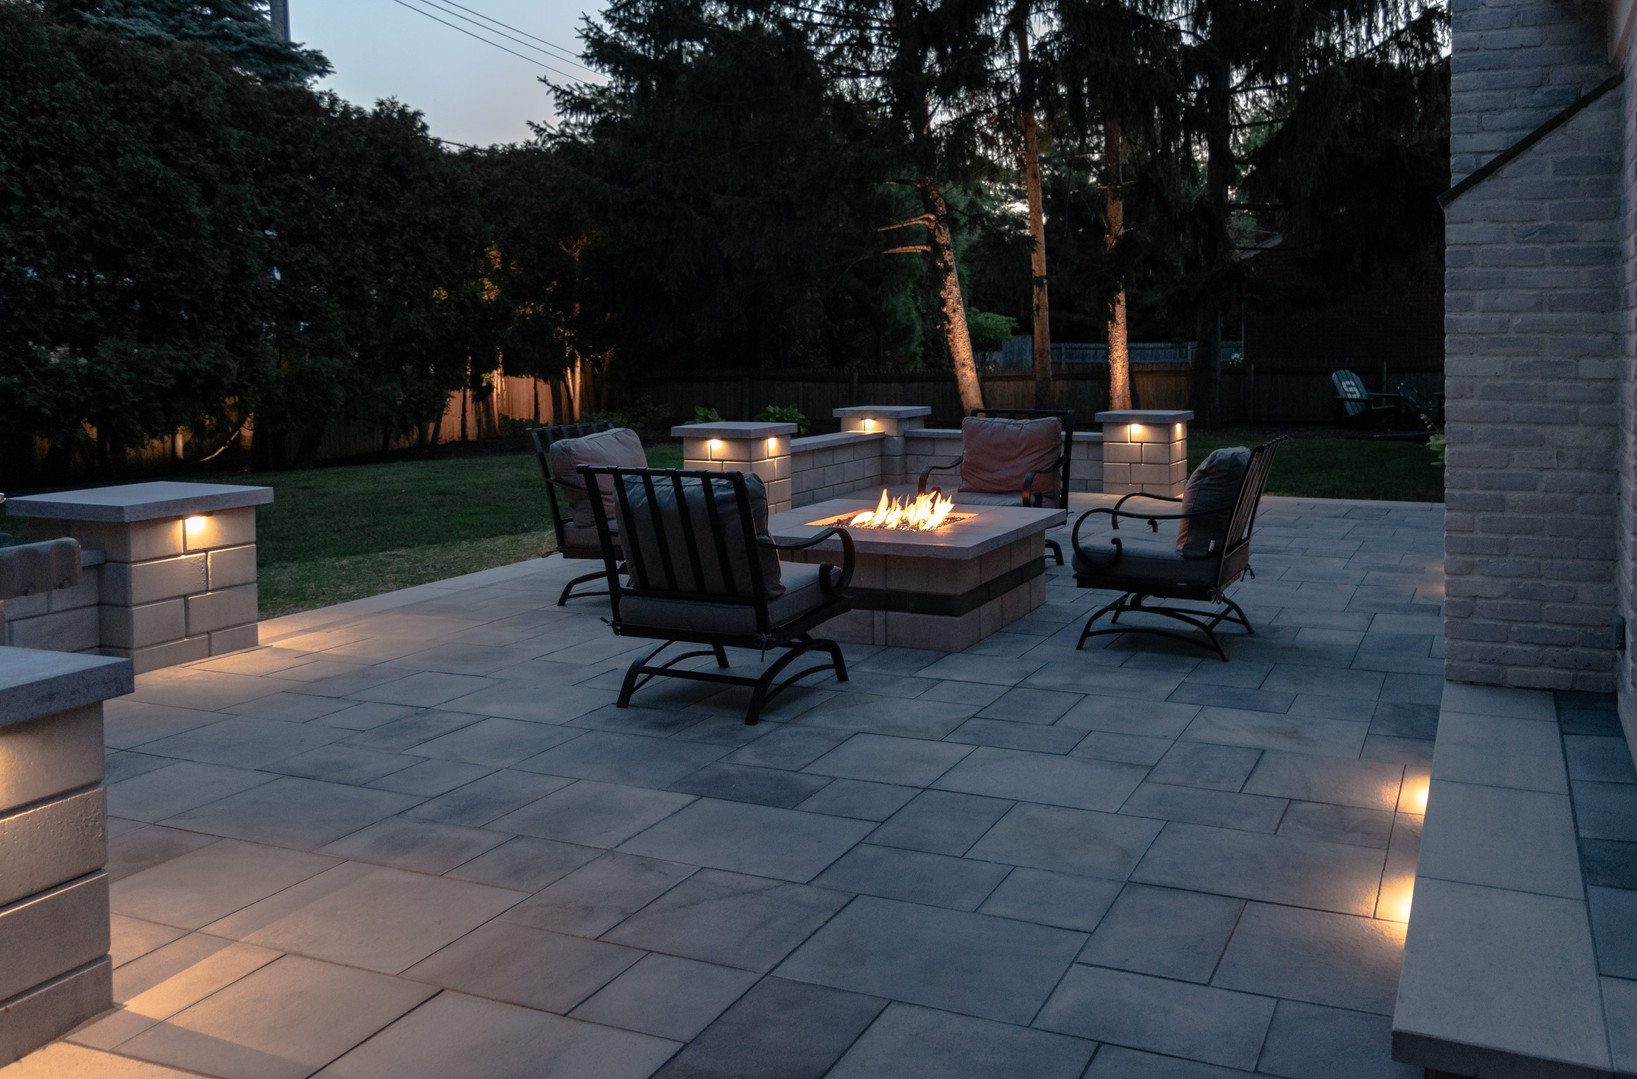 Comfortable Outdoor Living with Lighting